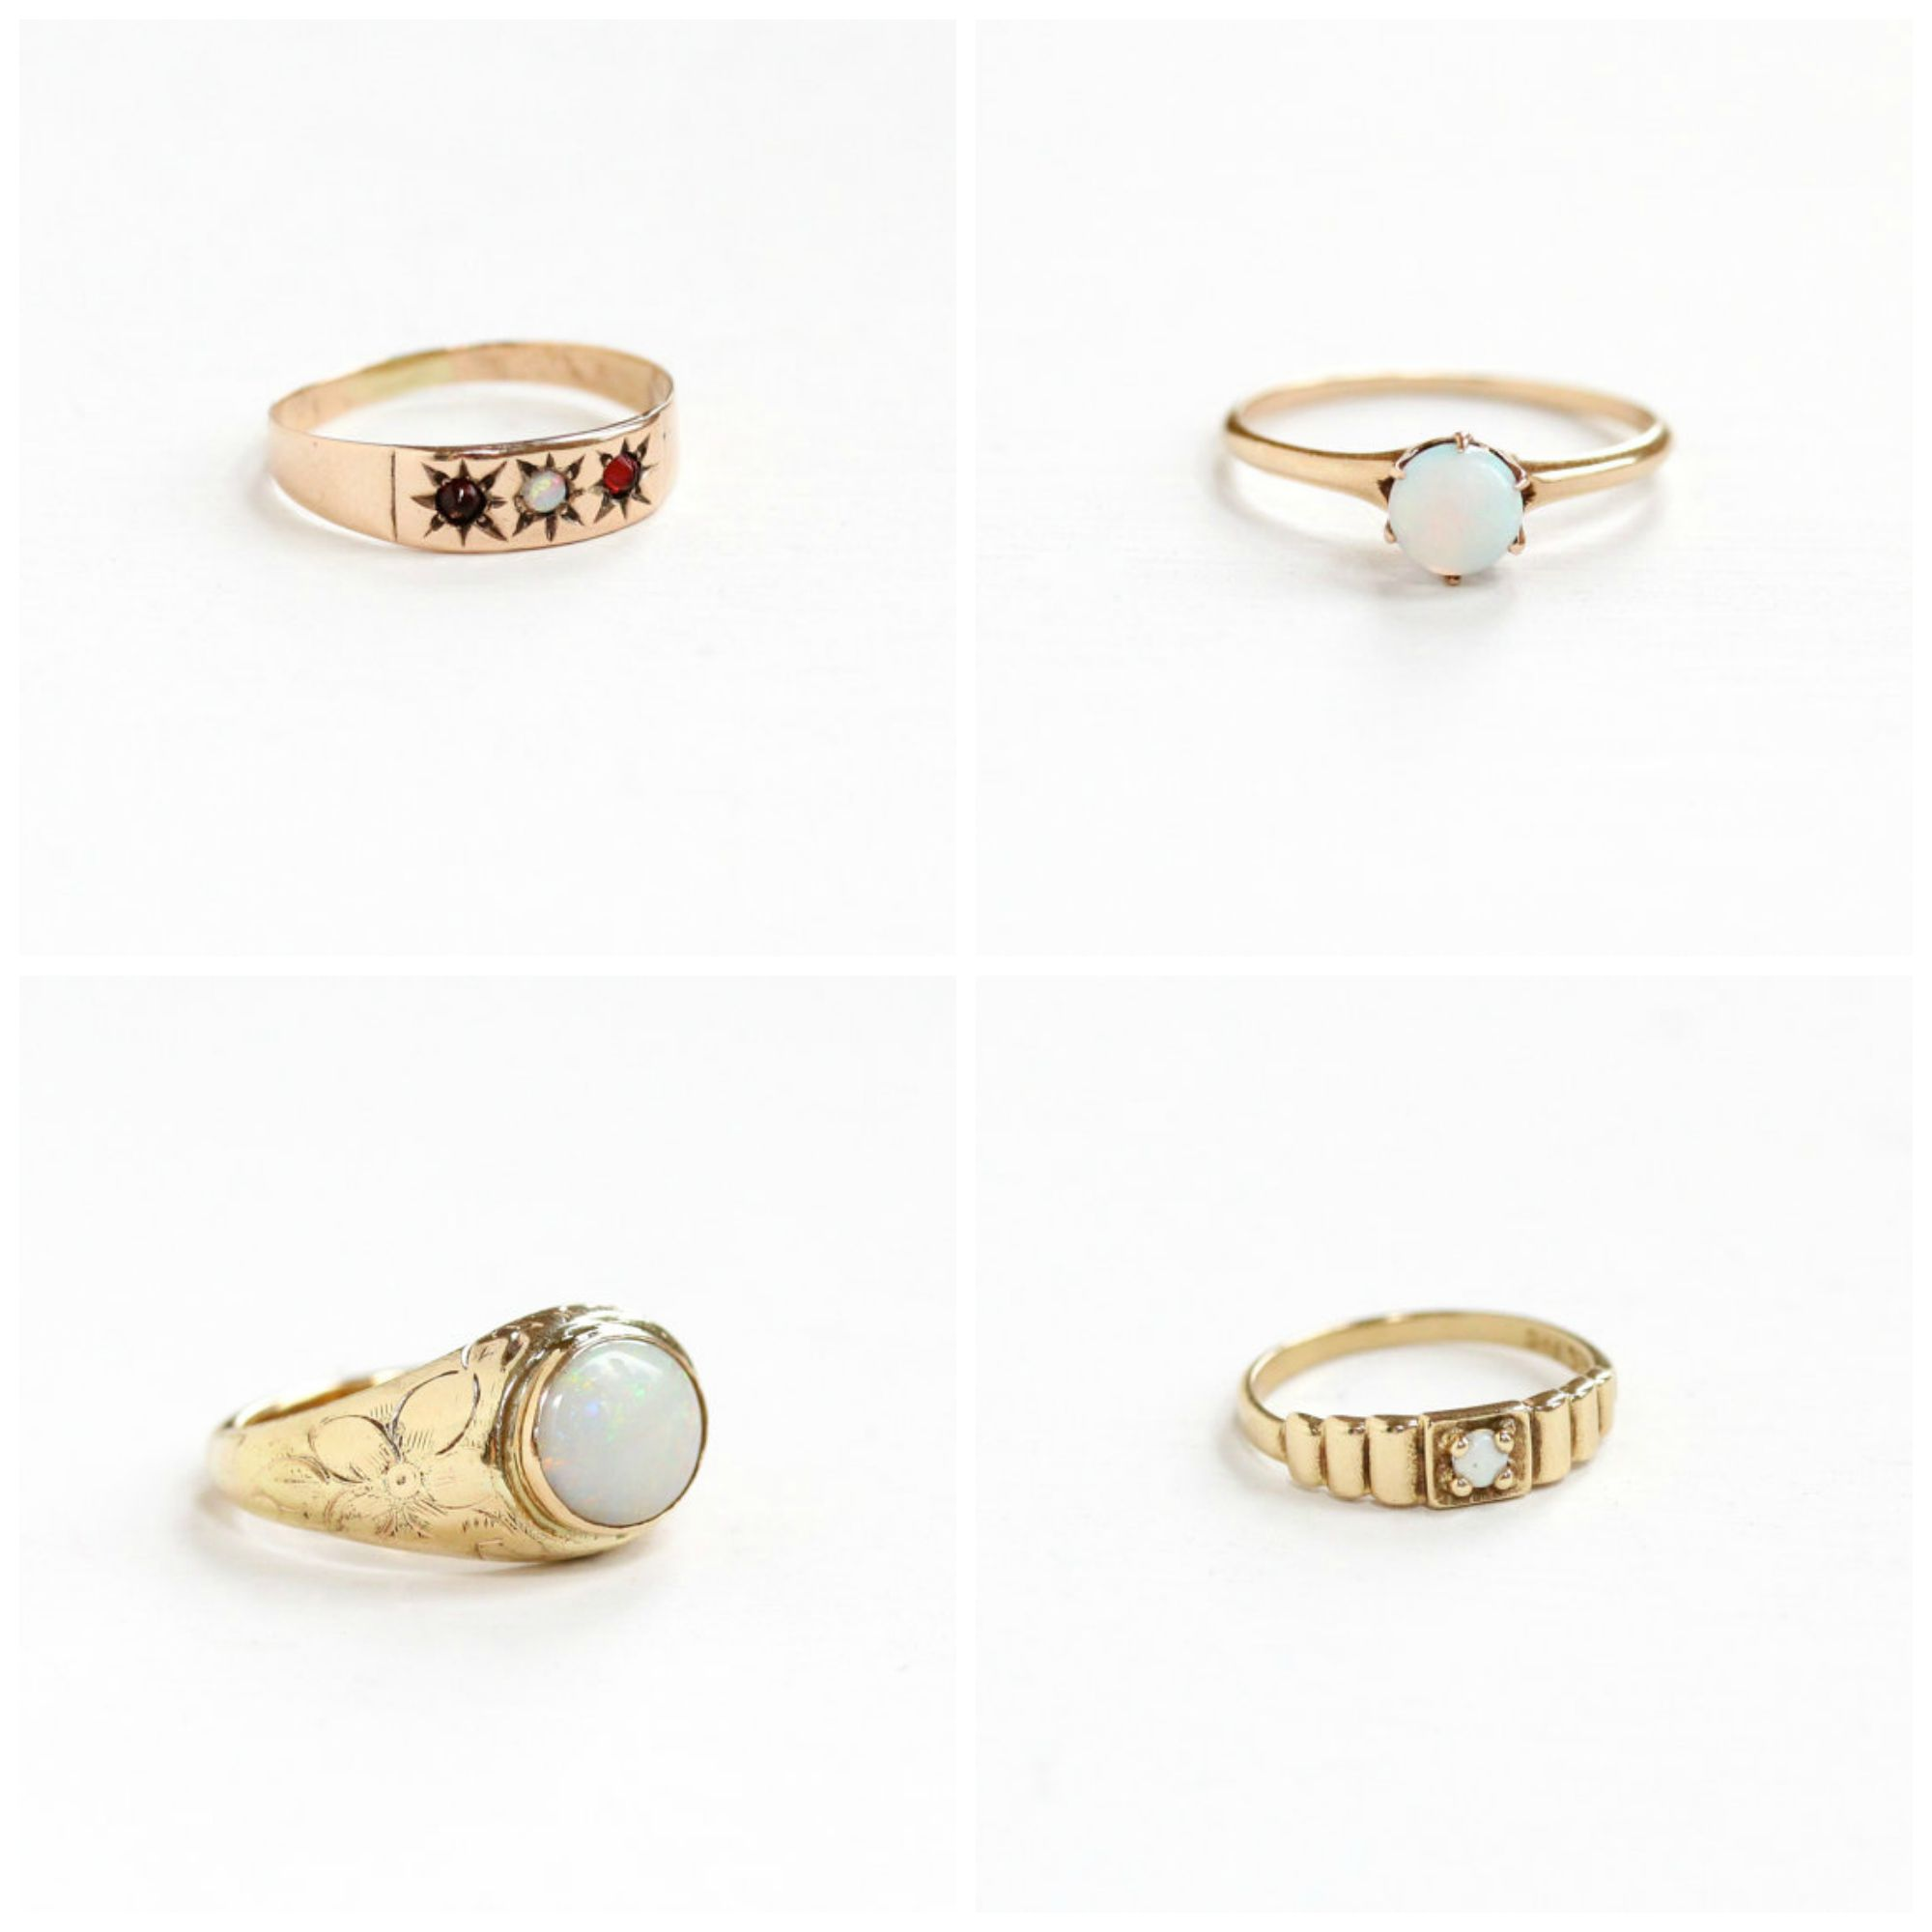 Top left : Antique Opal & Genuine Garnet  Baby Ring , Top right : Antique Rose Gold Opal  Ring , Bottom left : Antique Yellow Gold Opal  Ring , Bottom right :Vintage Yellow Gold Opal Baby  Ring